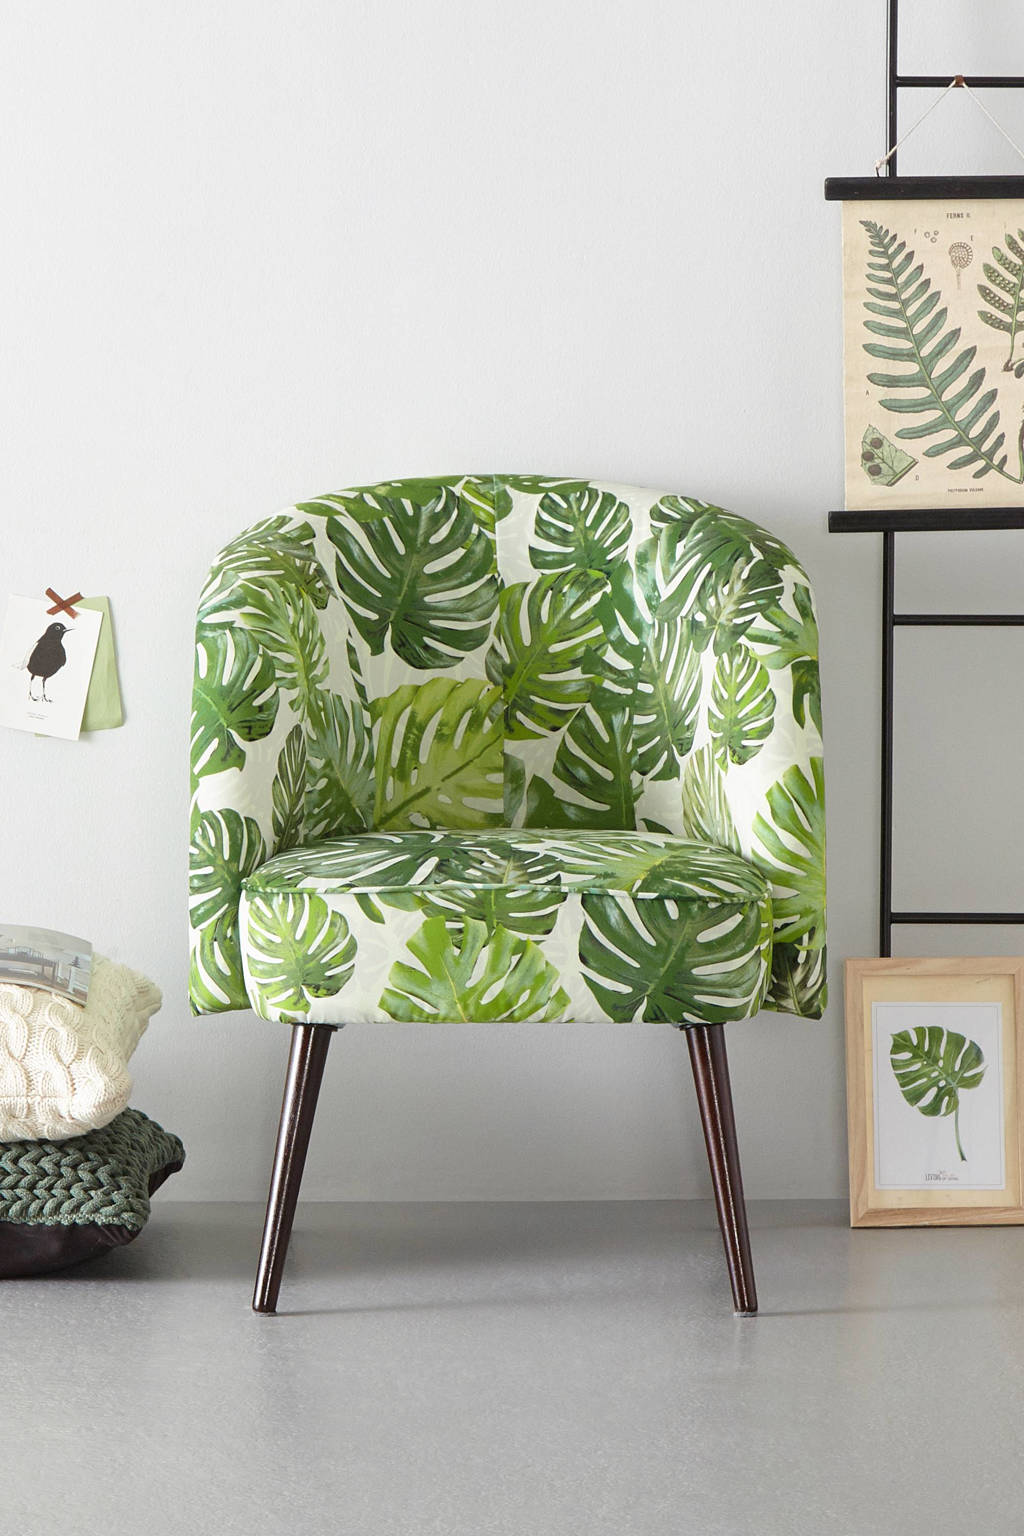 whkmp's own fauteuil Marilyn velours, Blad print (groen)